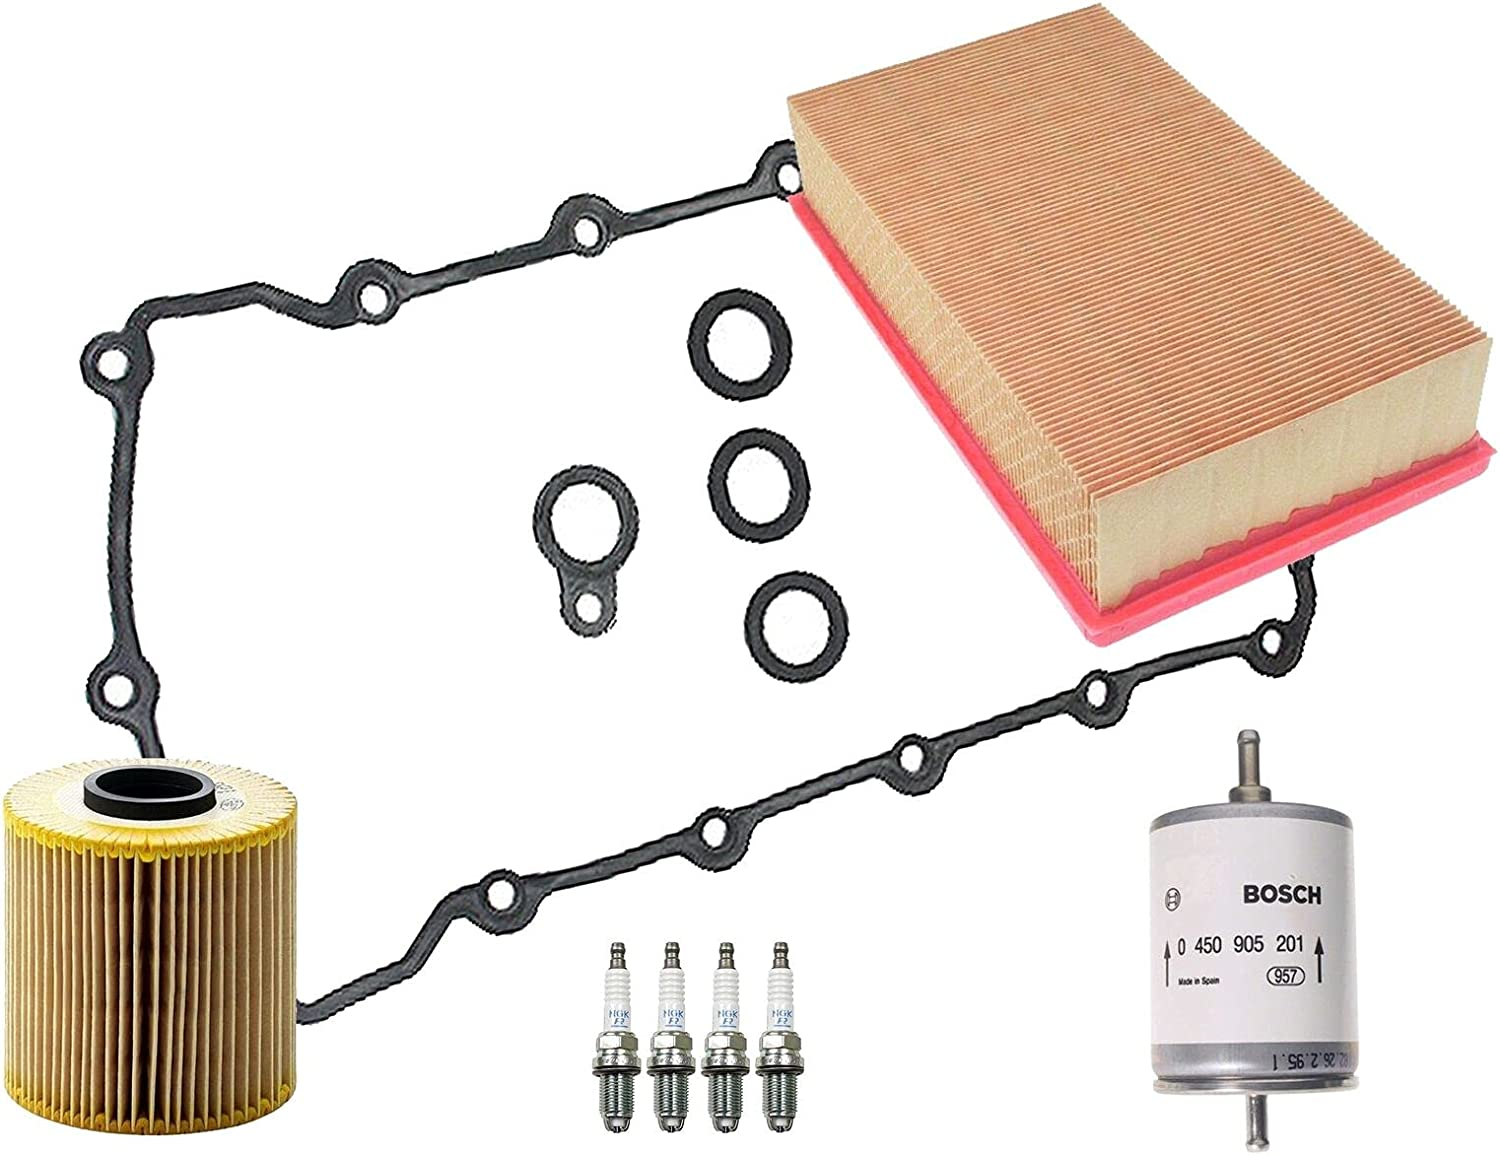 Tune Industry No. 1 Up and Filters Quantity limited kit Compatible 318i 1991 318is BMW with E30